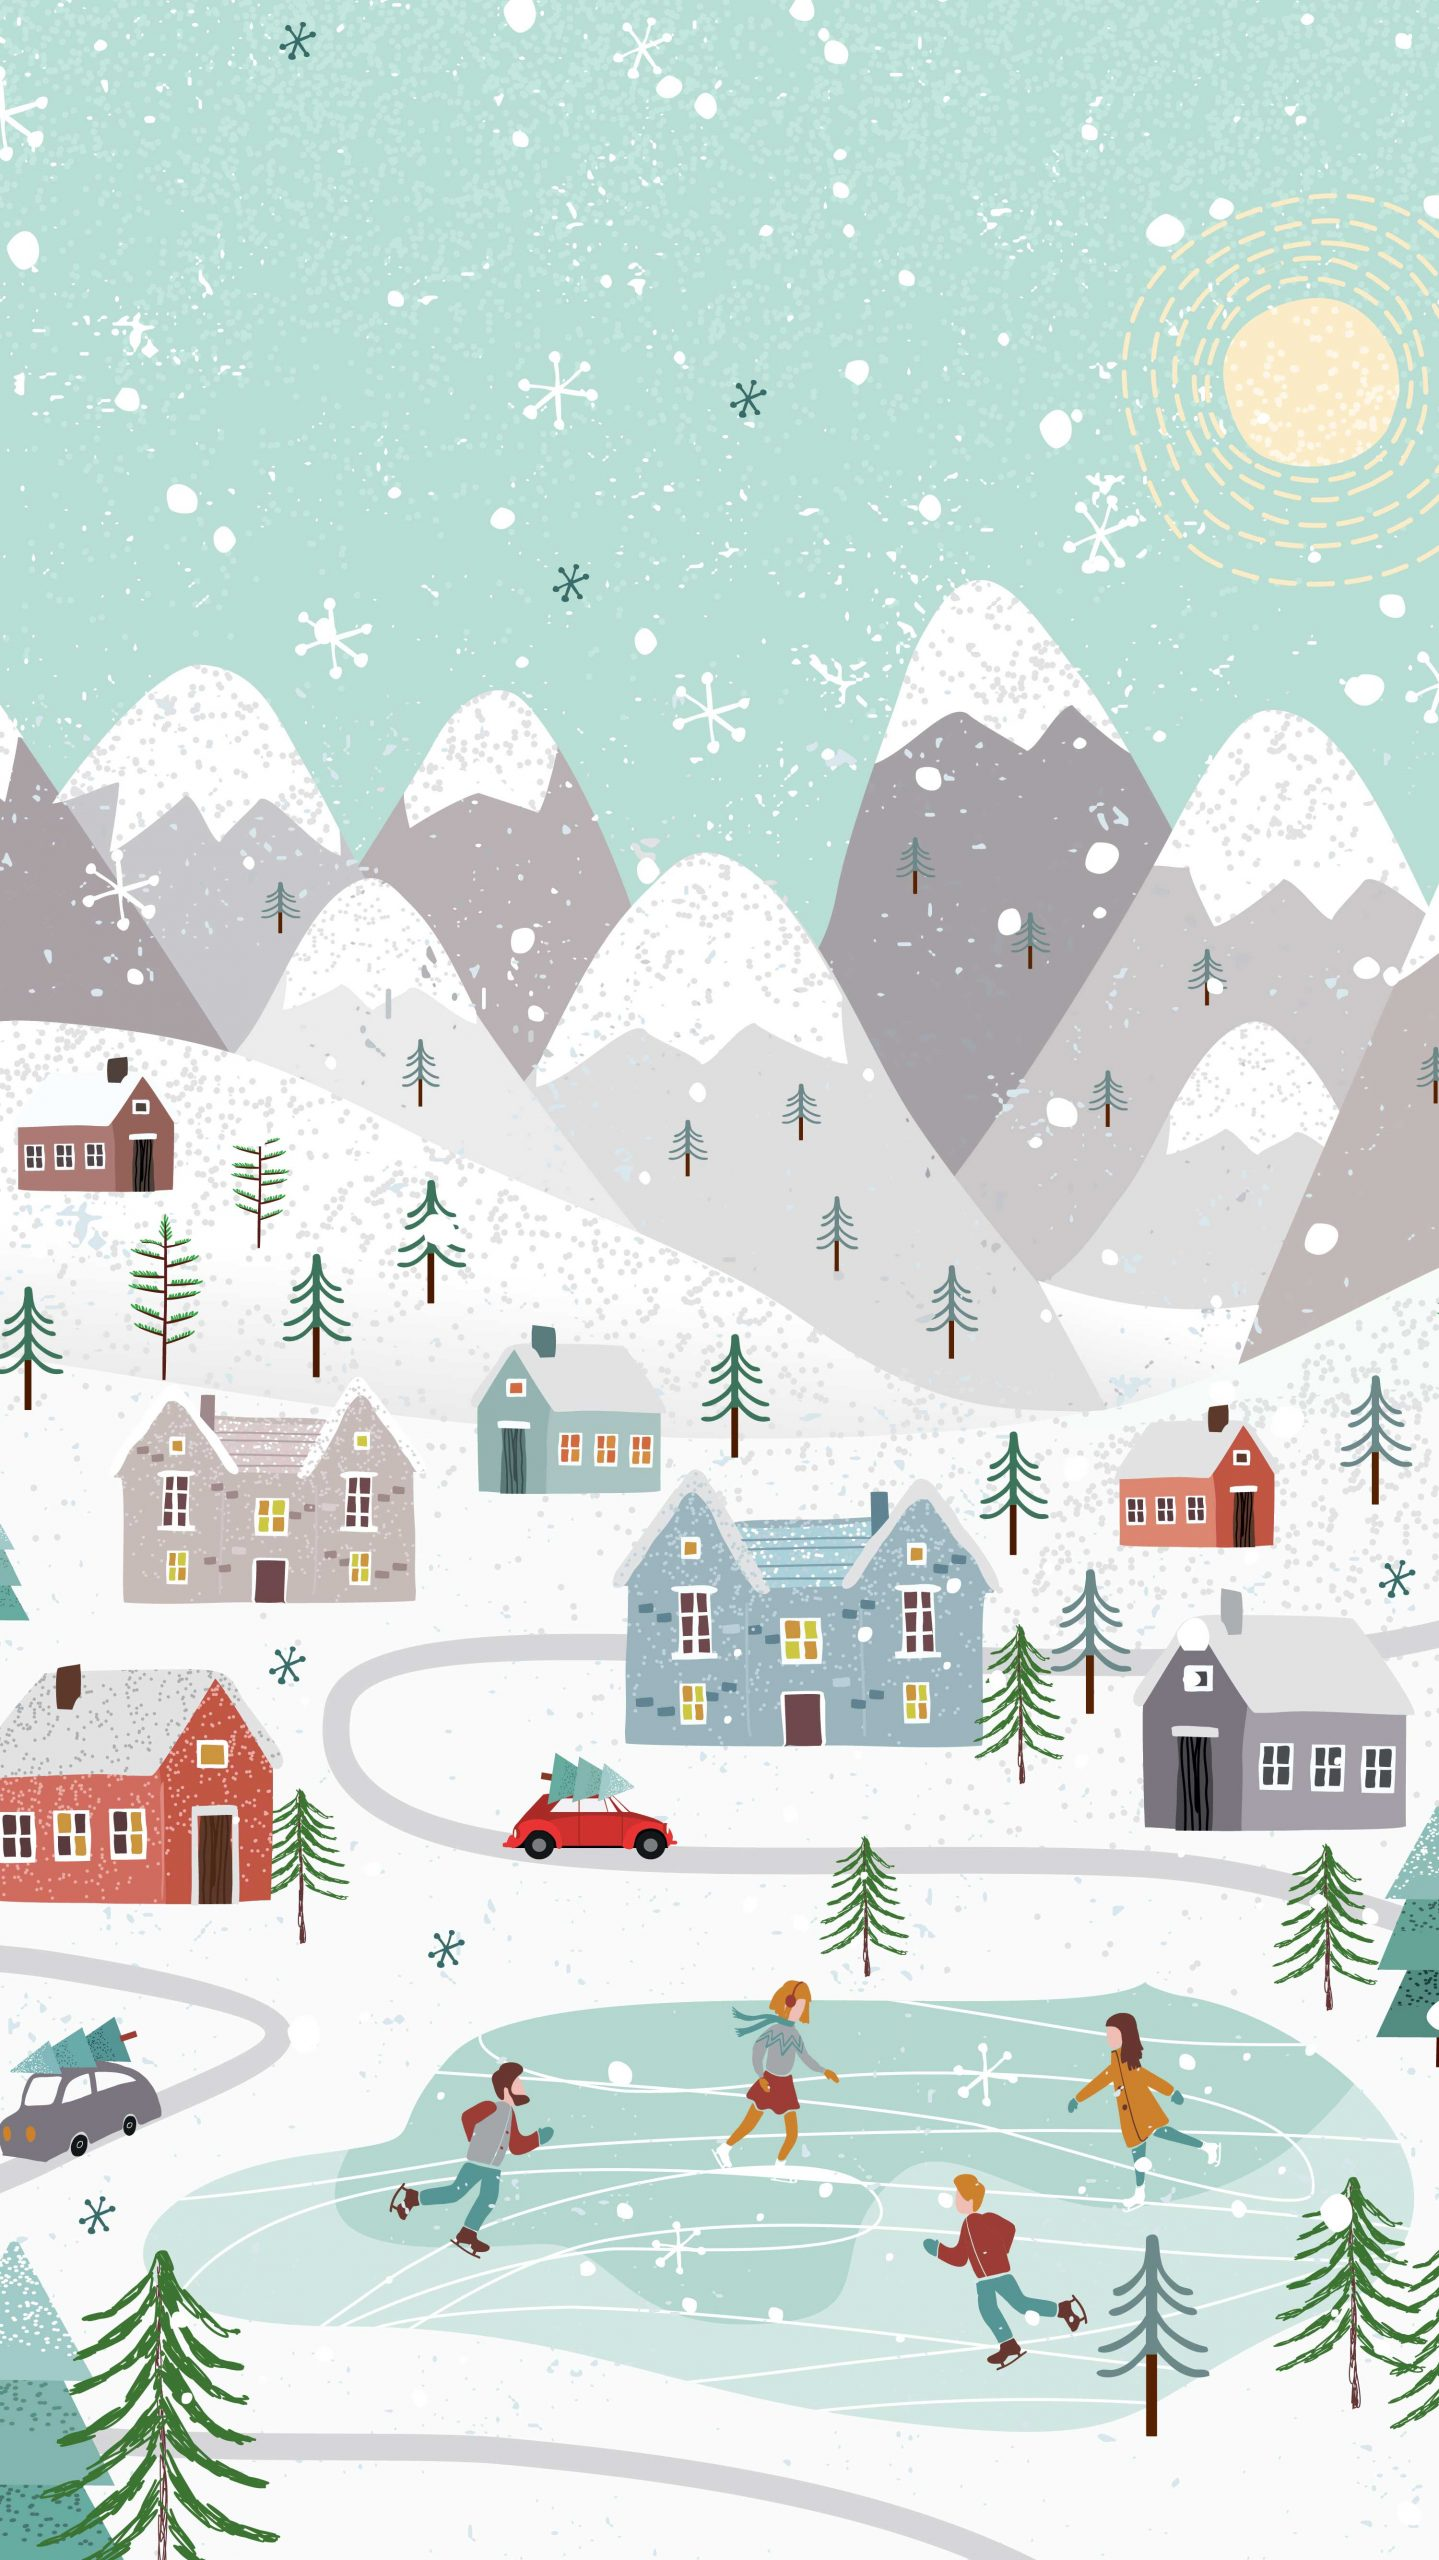 Free Winter Holiday Phone Wallpaper. Cute, fun, and folksy!